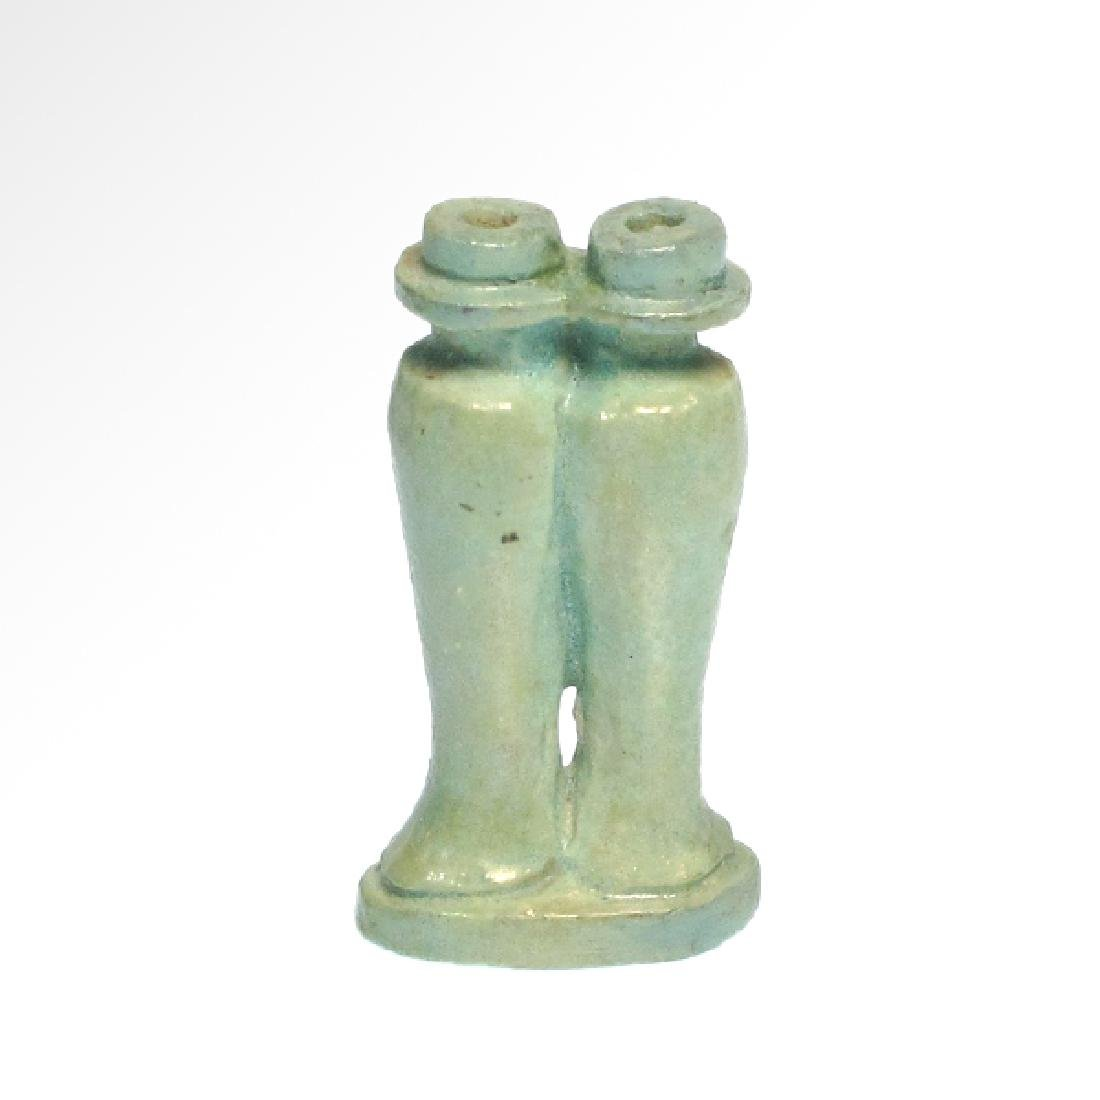 Small Egyptian Cosmetic Double Vessel, c. 600 B.C.